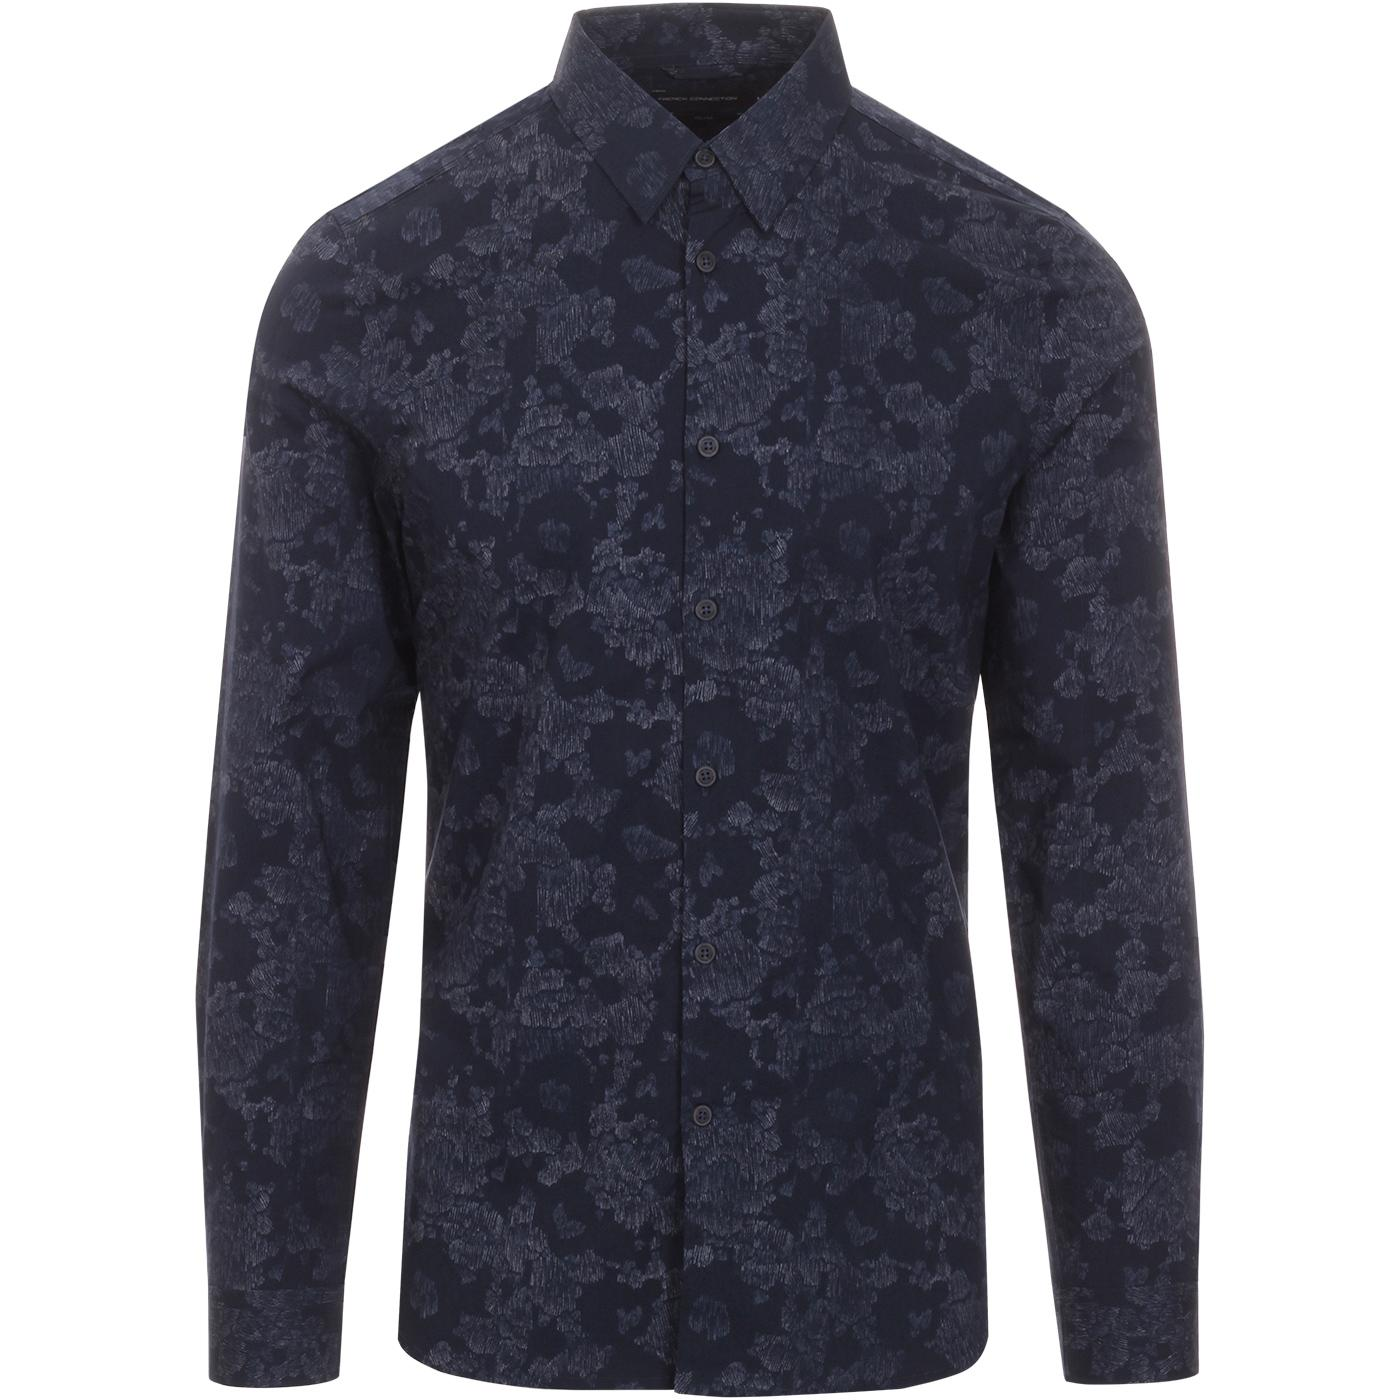 FRENCH CONNECTION Yari Smudgy Camo Line Shirt NAVY